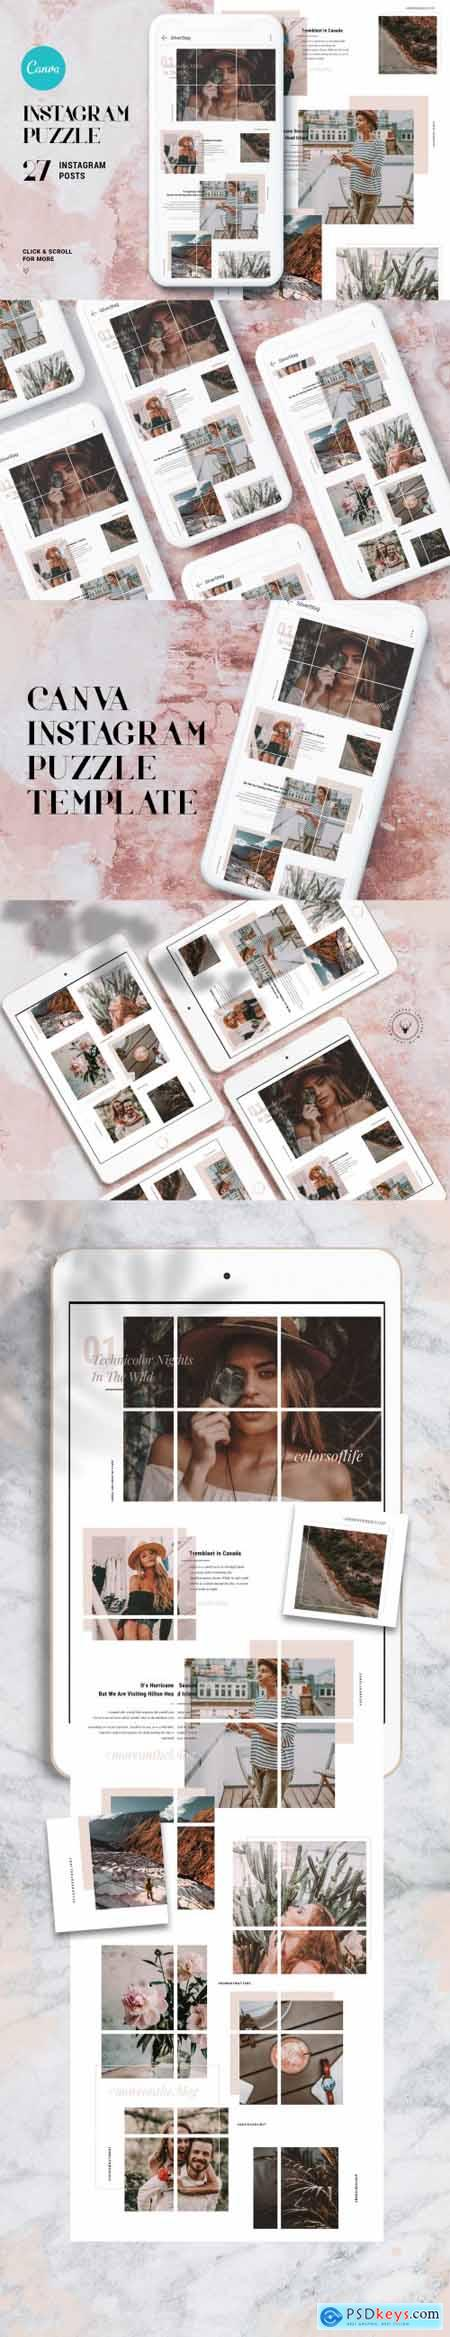 InstaGrid 1.0 Canva Puzzle Template